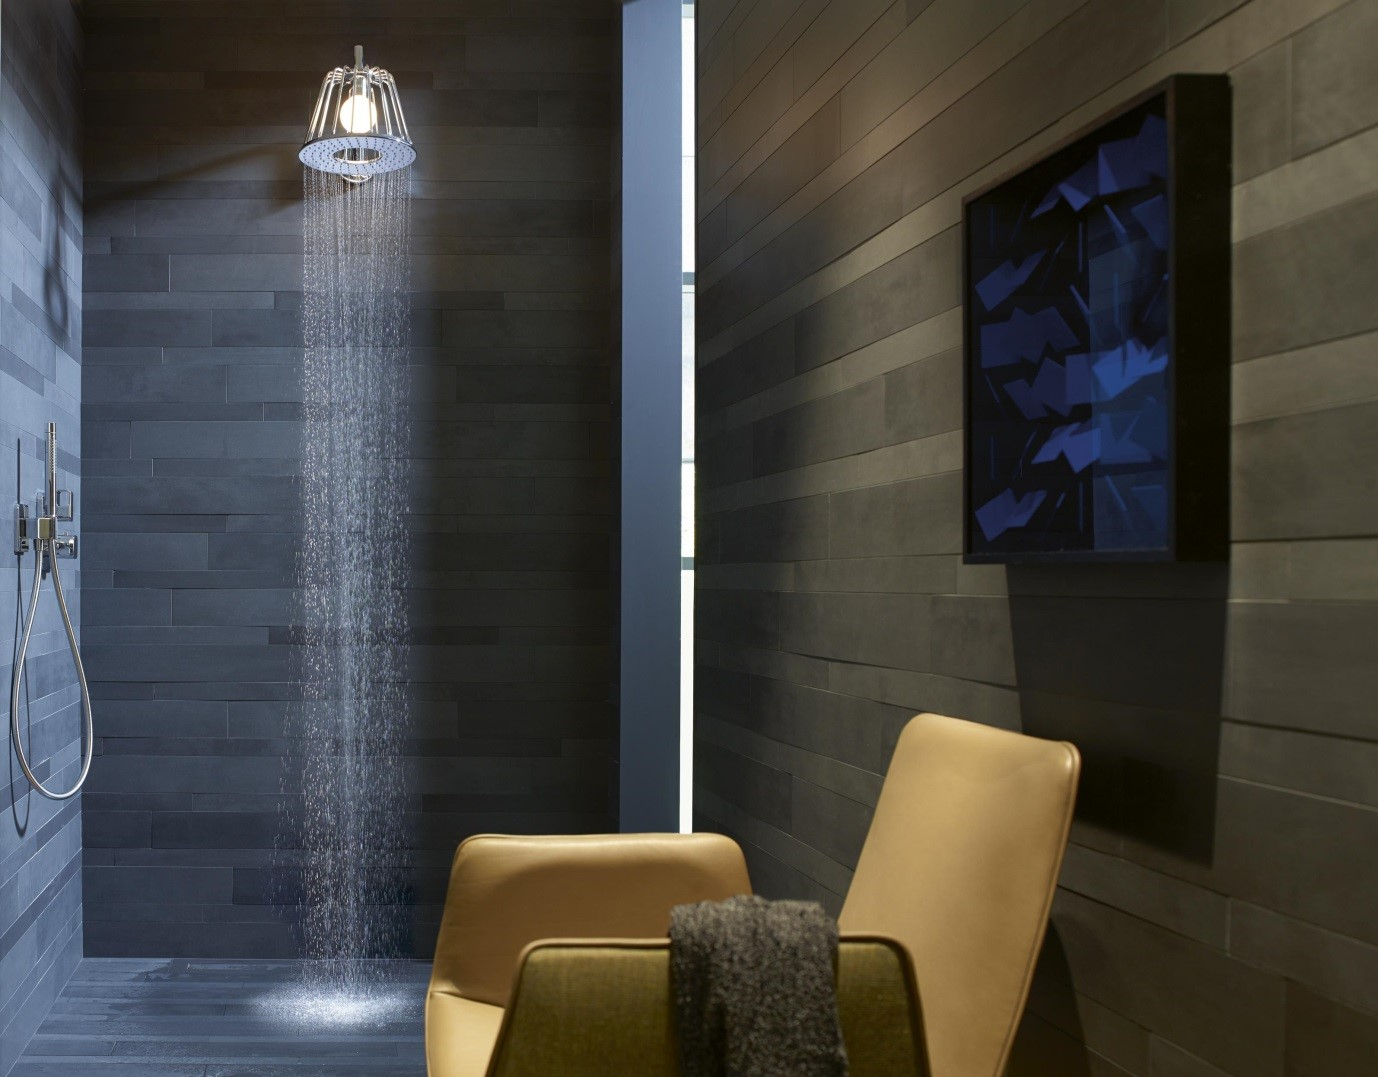 Hansgrohe Axor Lamp showerhead available from BATHLINE Bathrooms.